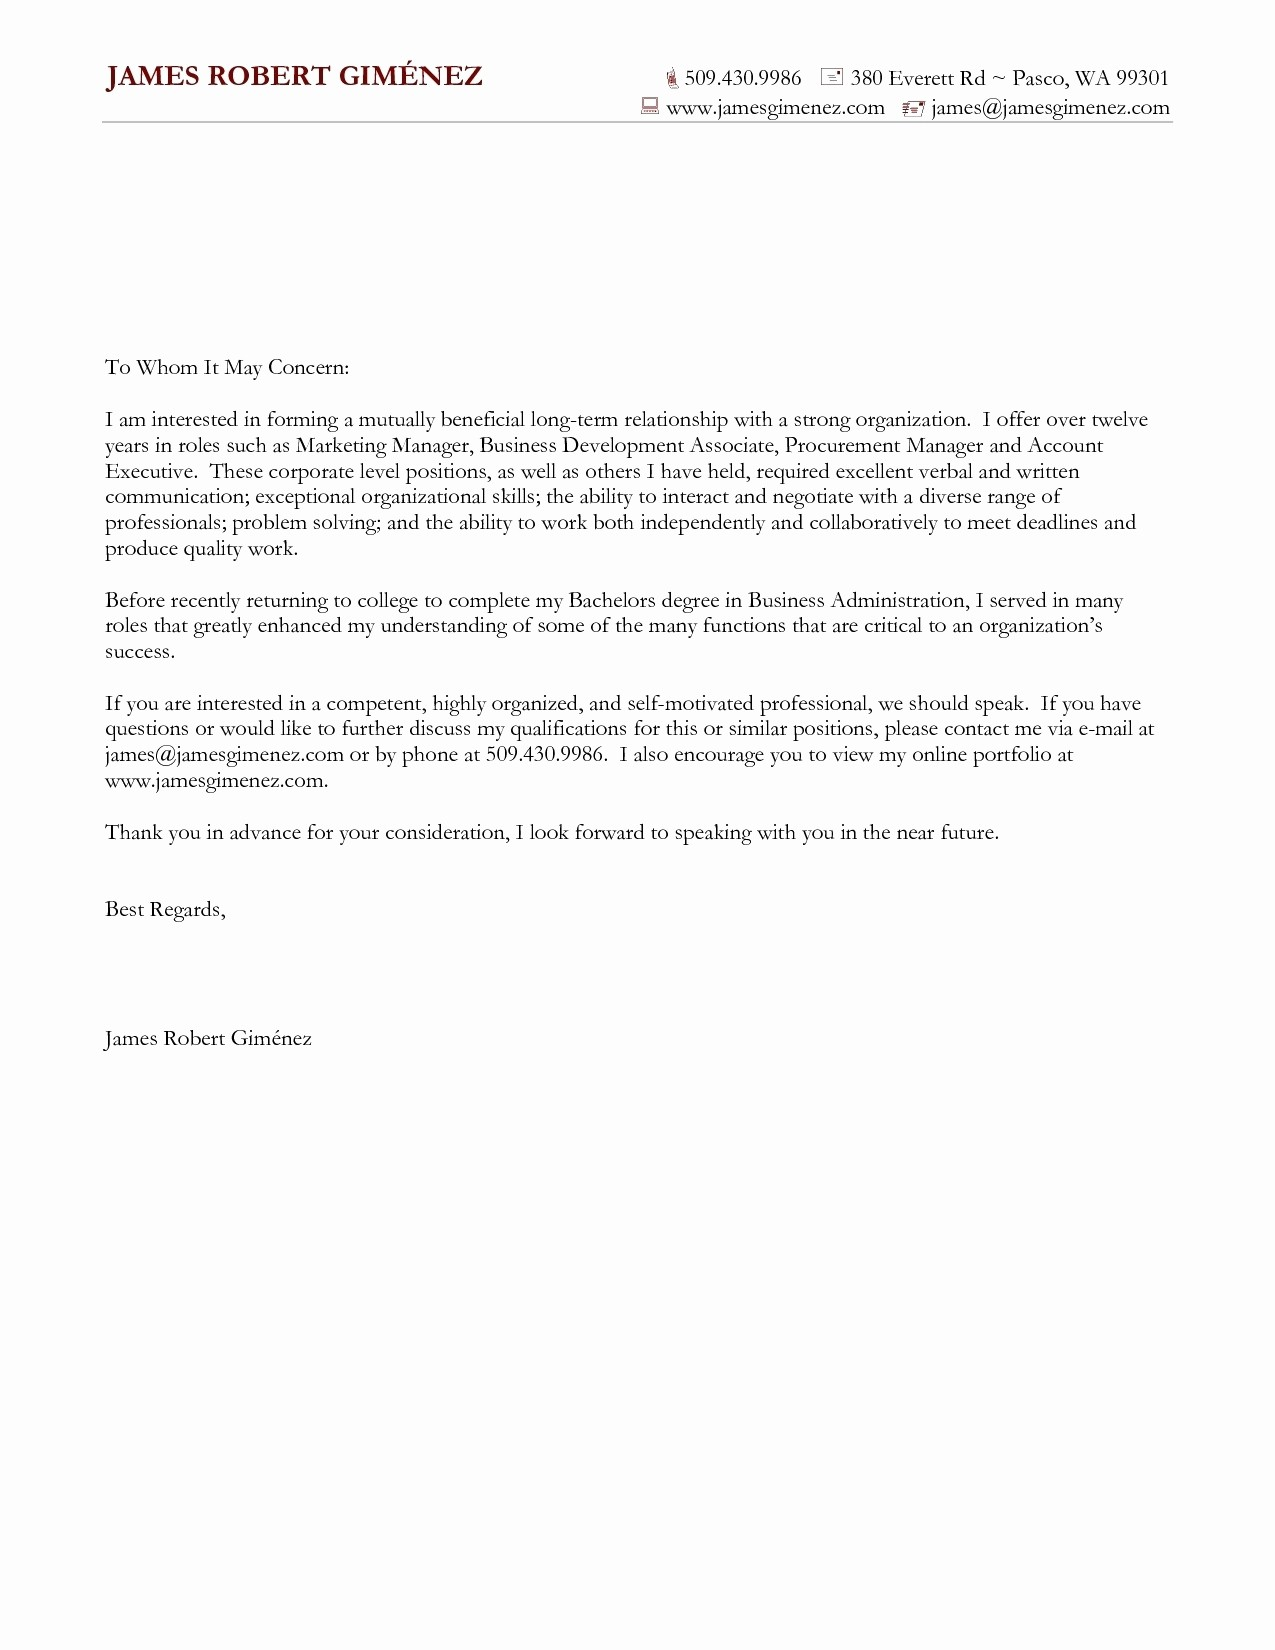 Cv and Cover Letter Template Luxury Mock Cover Letter